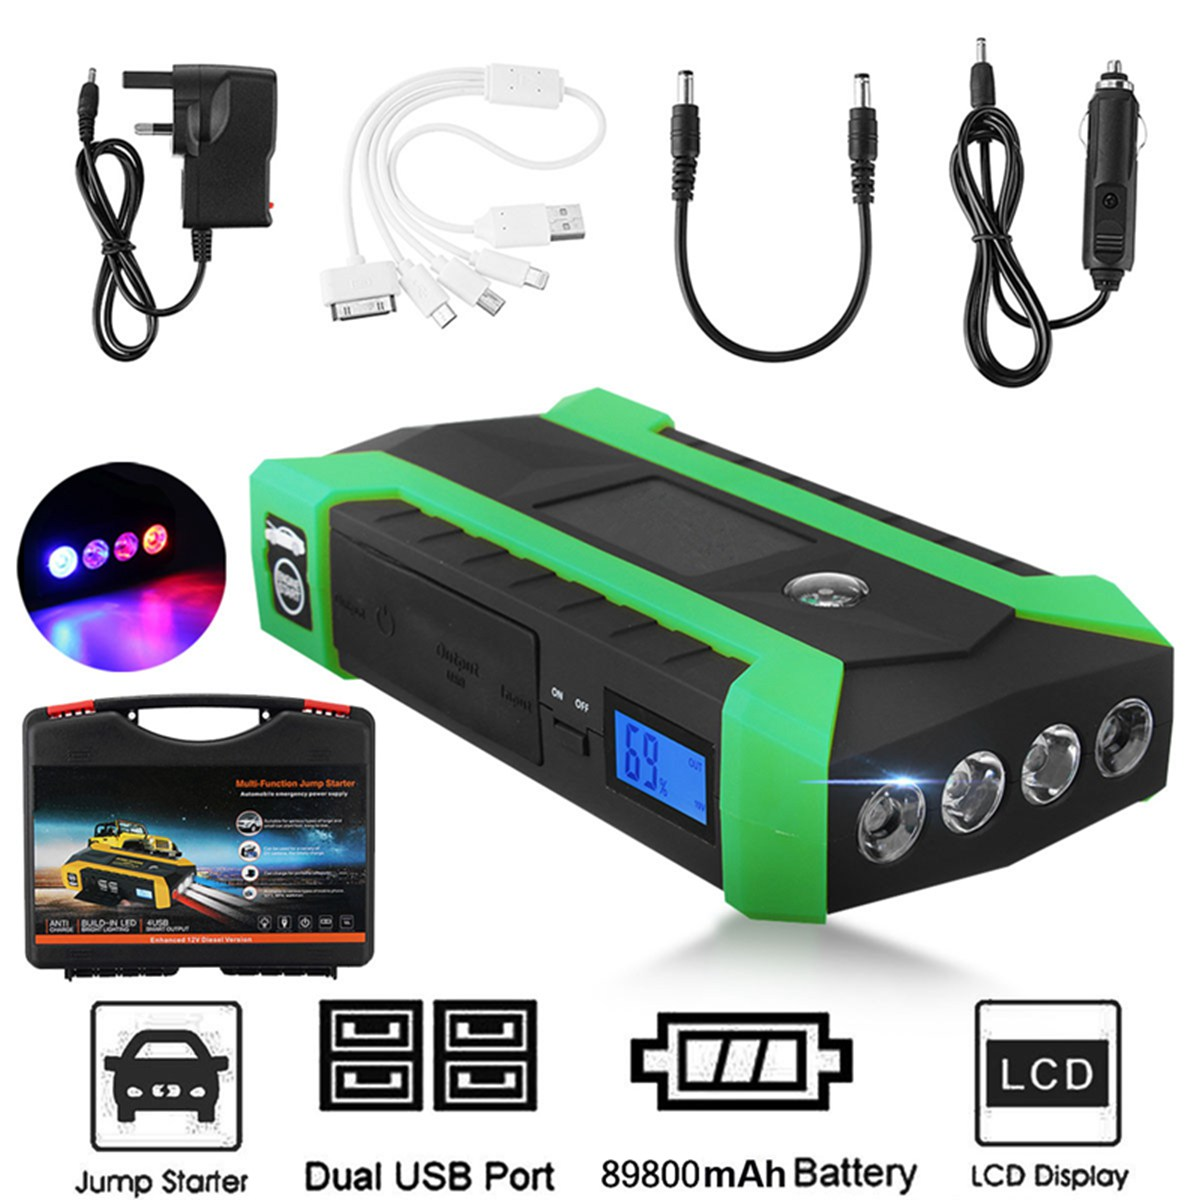 Useful 89800mAh 12V 4USB Multifunction Car Charger Battery Jump Starter LED Light Auto Emergency Mobile Power Bank Tool Kit 13500mah 12v multi function mobile power bank tablets notebook phone ca r auto eps starter emergency start power